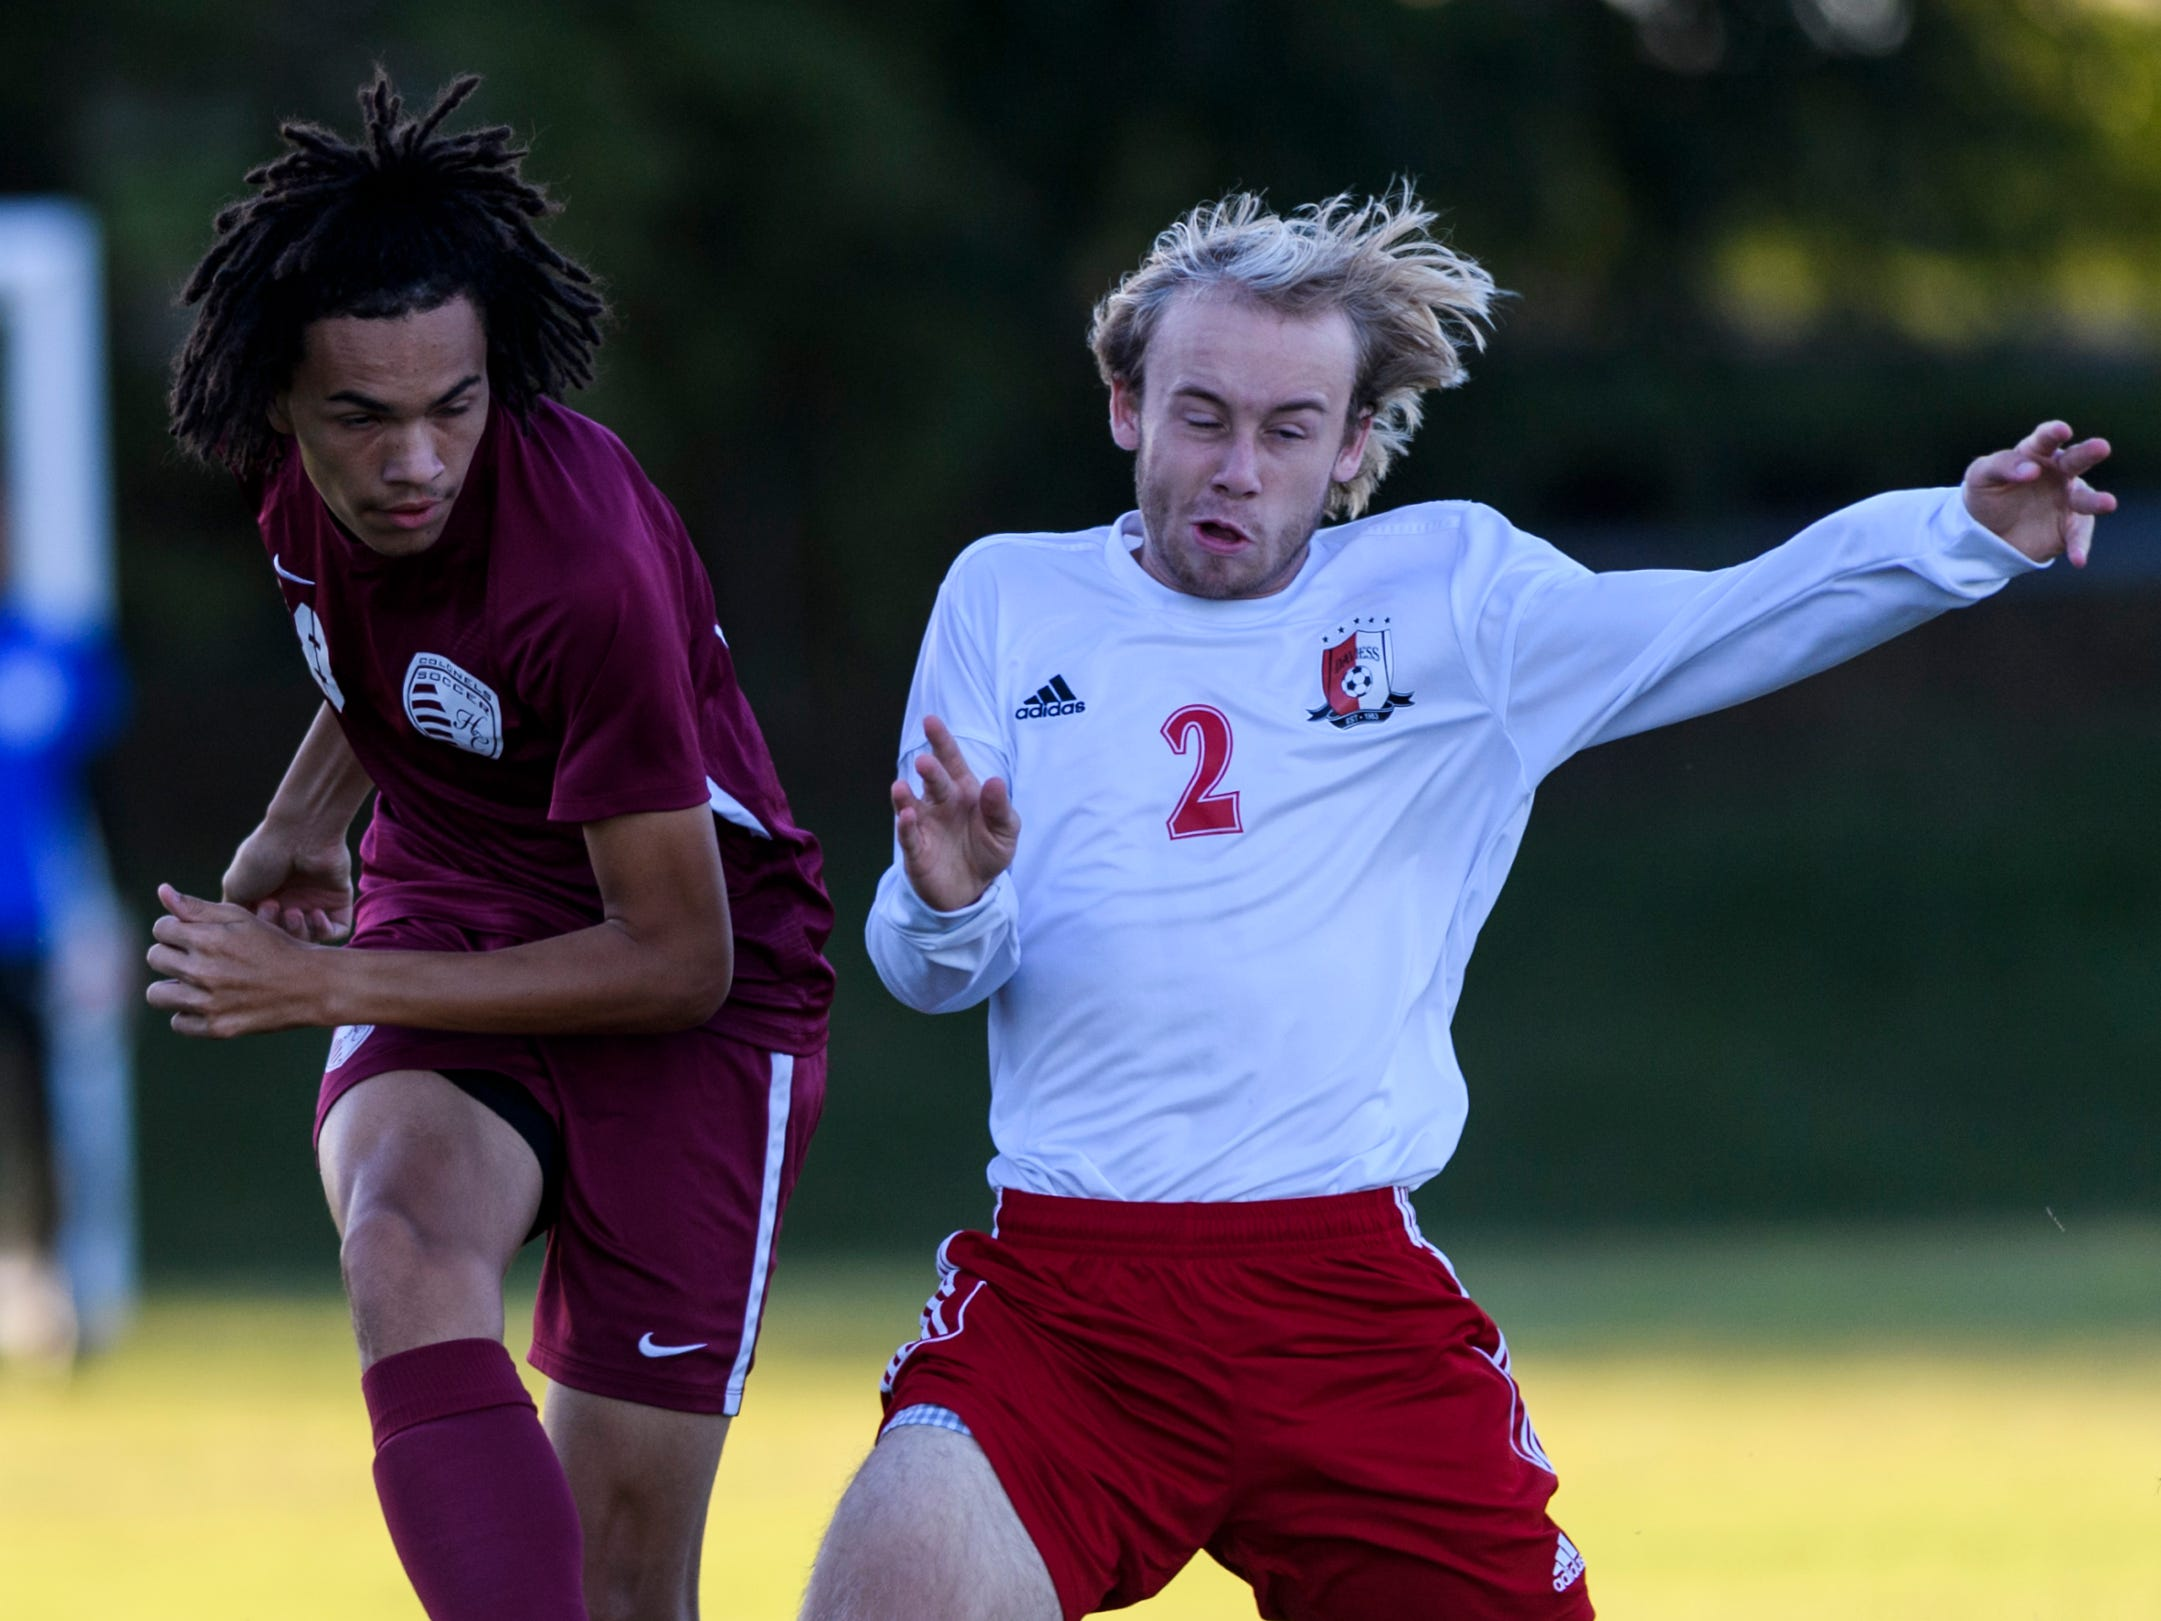 Daviess County's Hunter Clark (2) keeps the ball from Henderson County's Andre Cruce (18) at Colonel Field in Henderson, Ky., Thursday, Sept. 27, 2018. The Panthers defeated the Colonels 5-3.